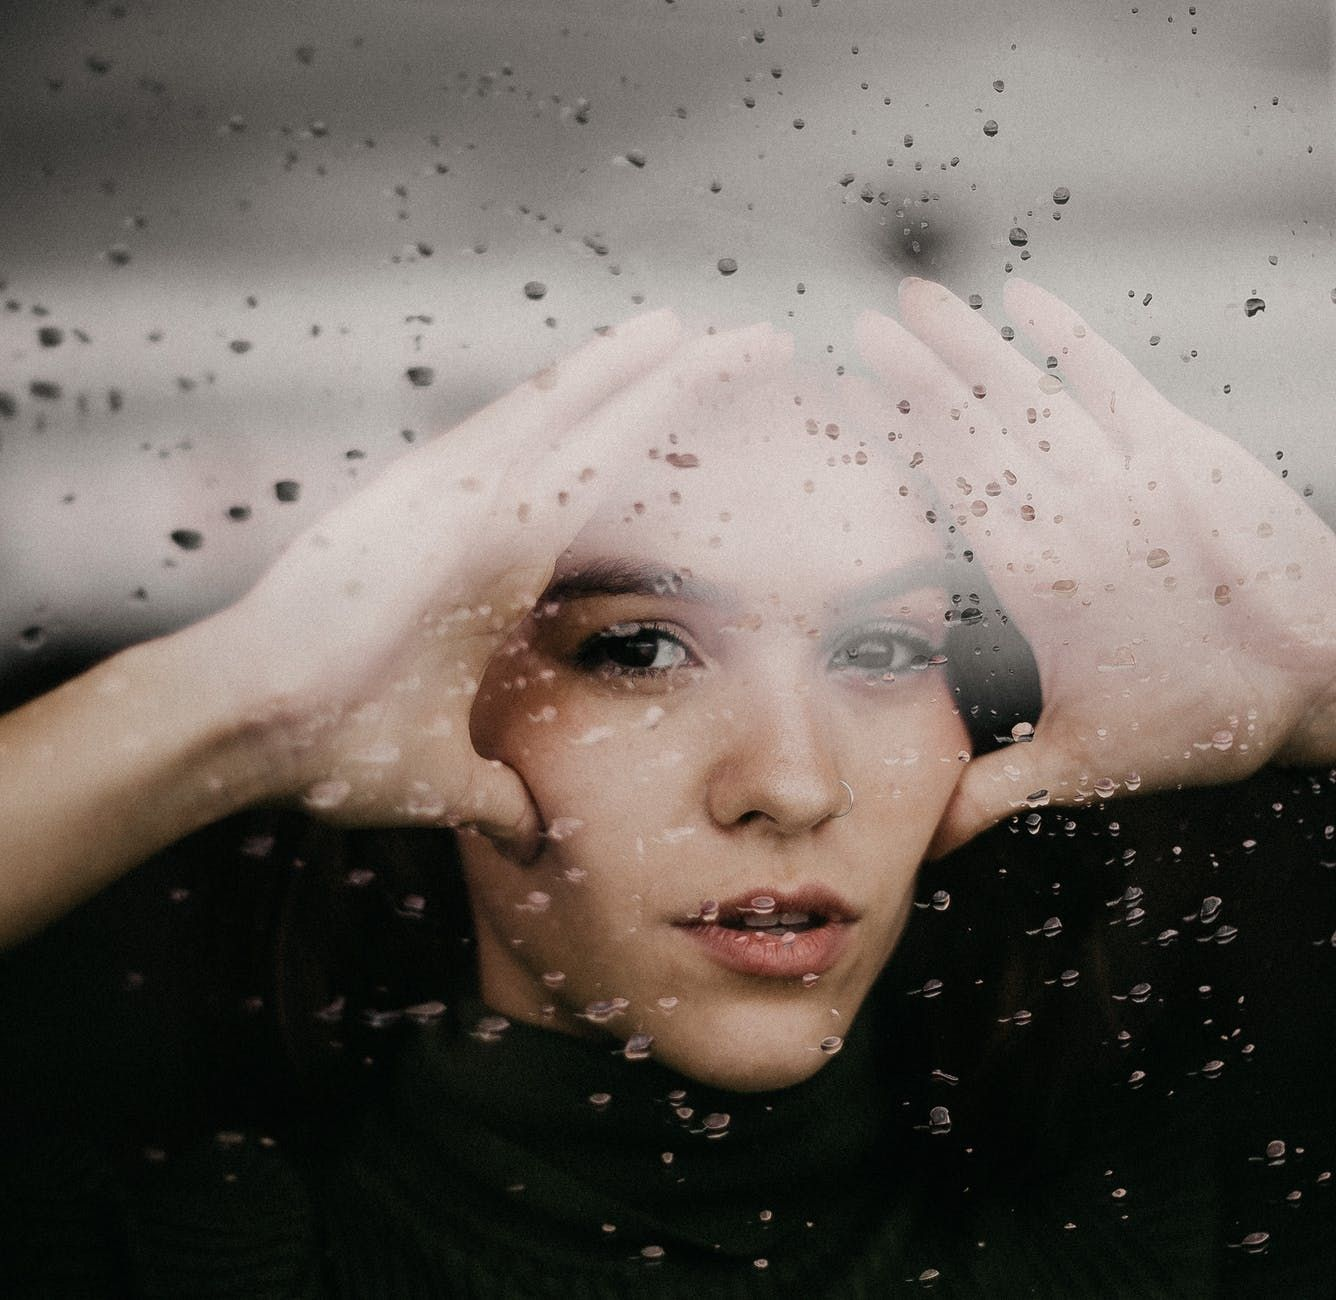 pensive female standing behind glass window with drops of water